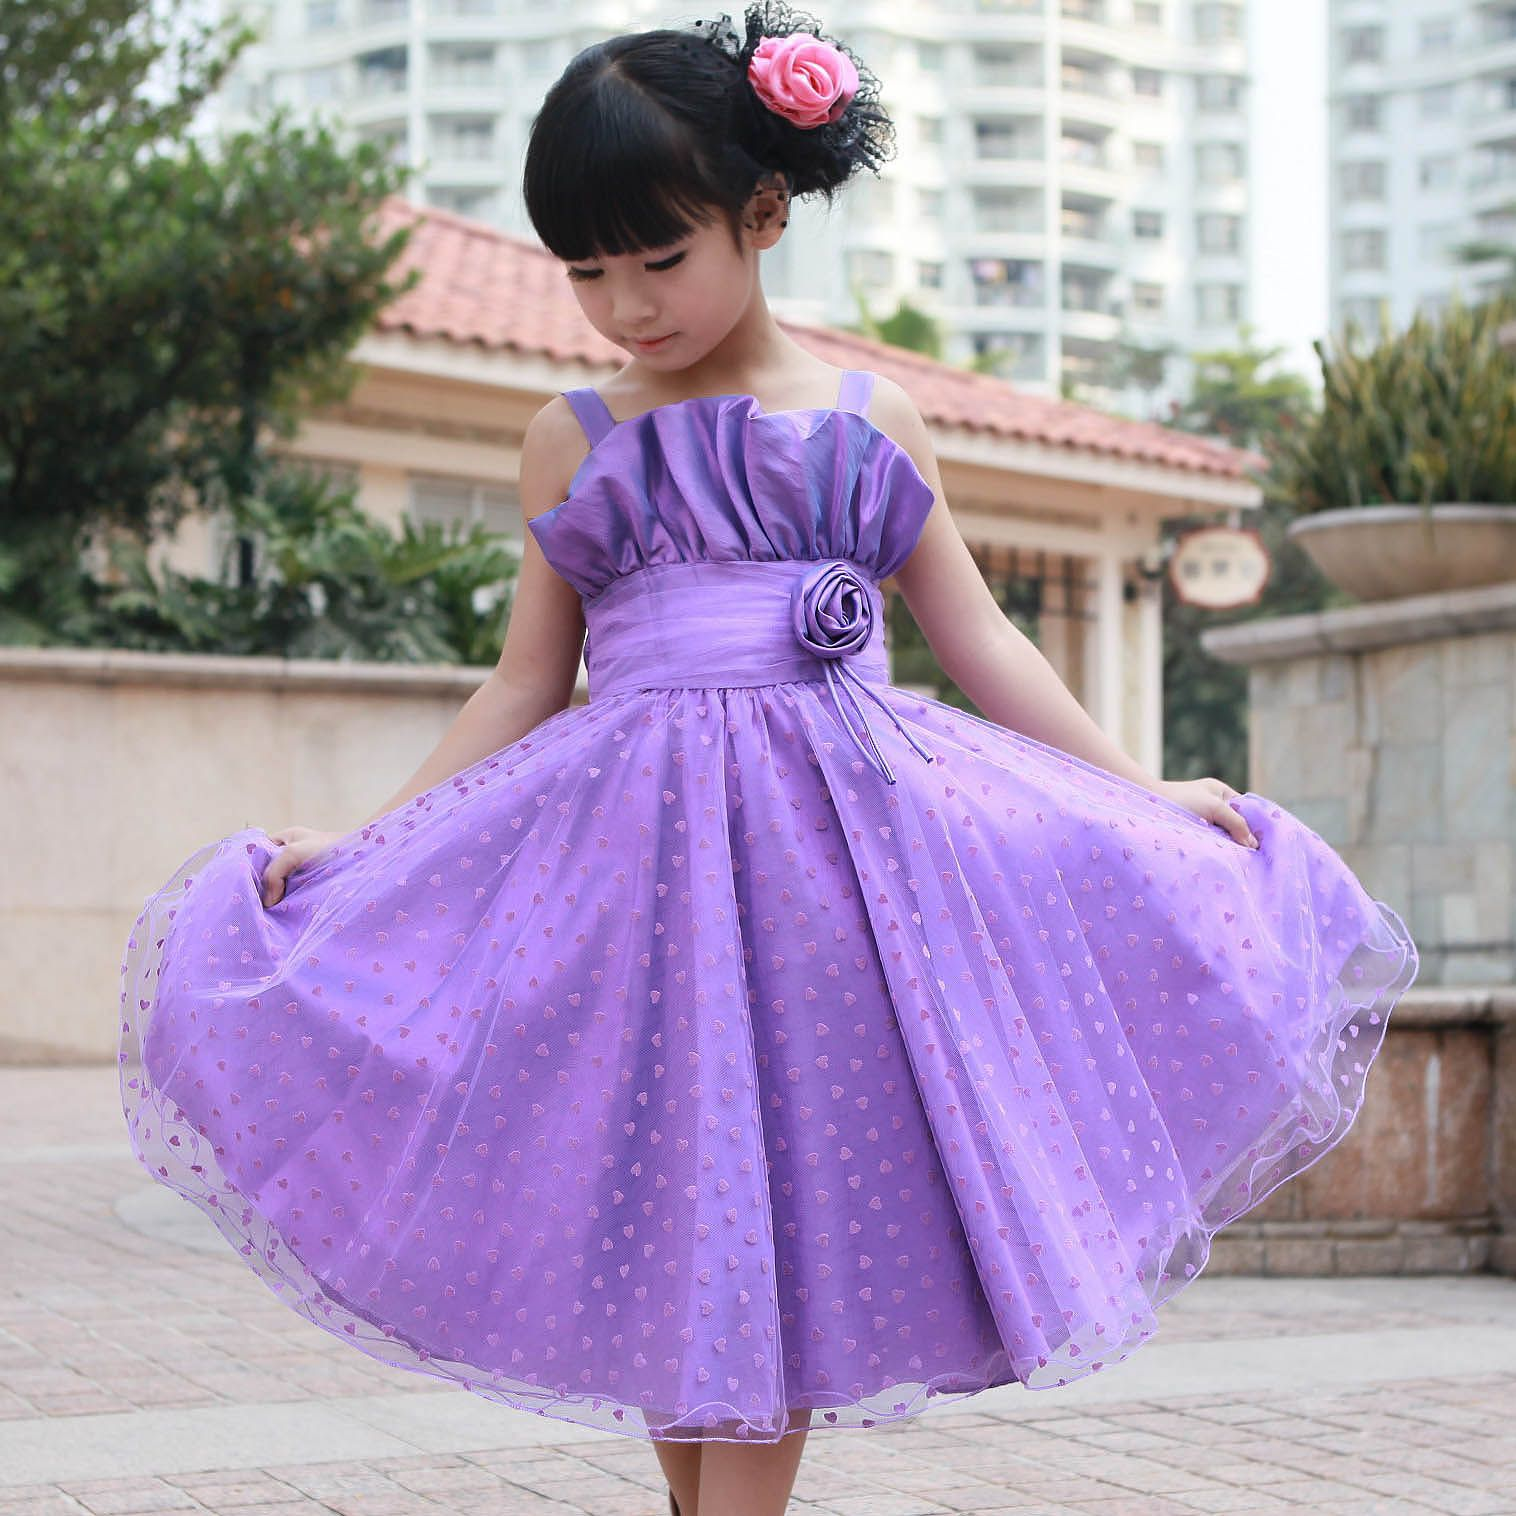 Wedding Dresses For Childrens In : Black girls in lavender wedding dresses